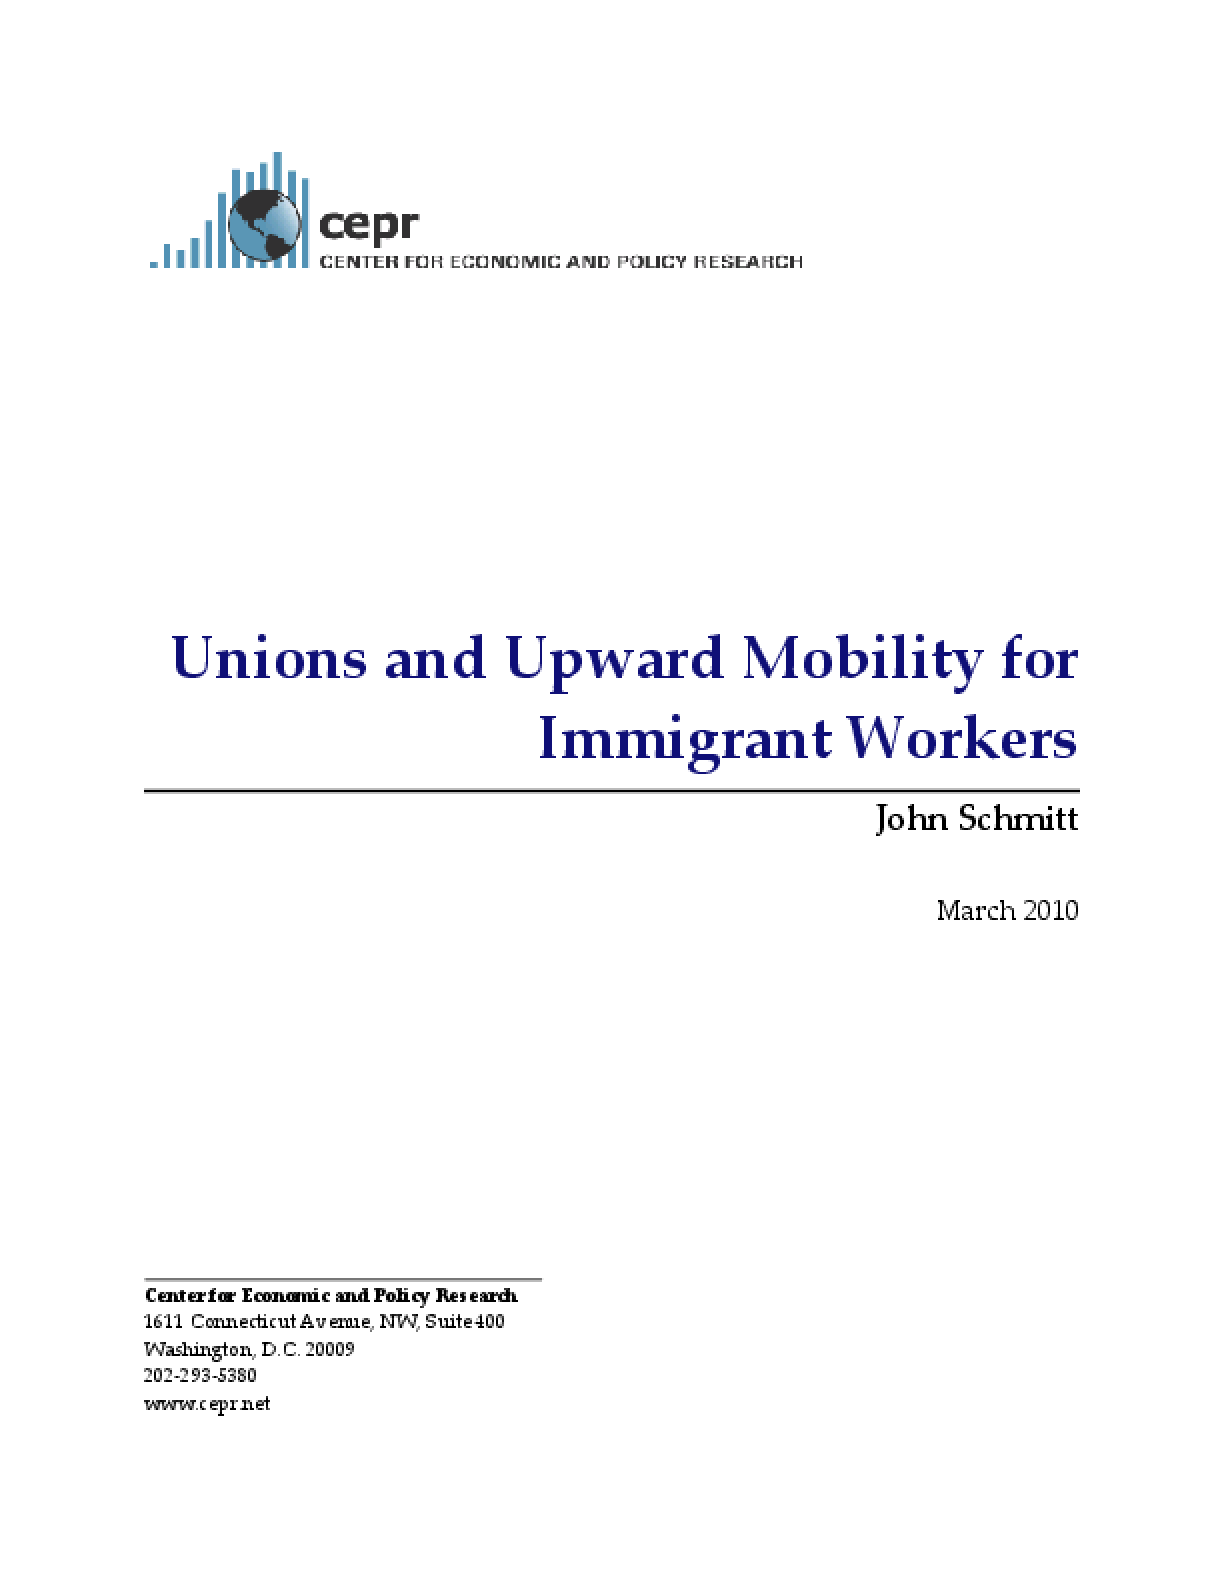 Unions and Upward Mobility for Immigrant Workers